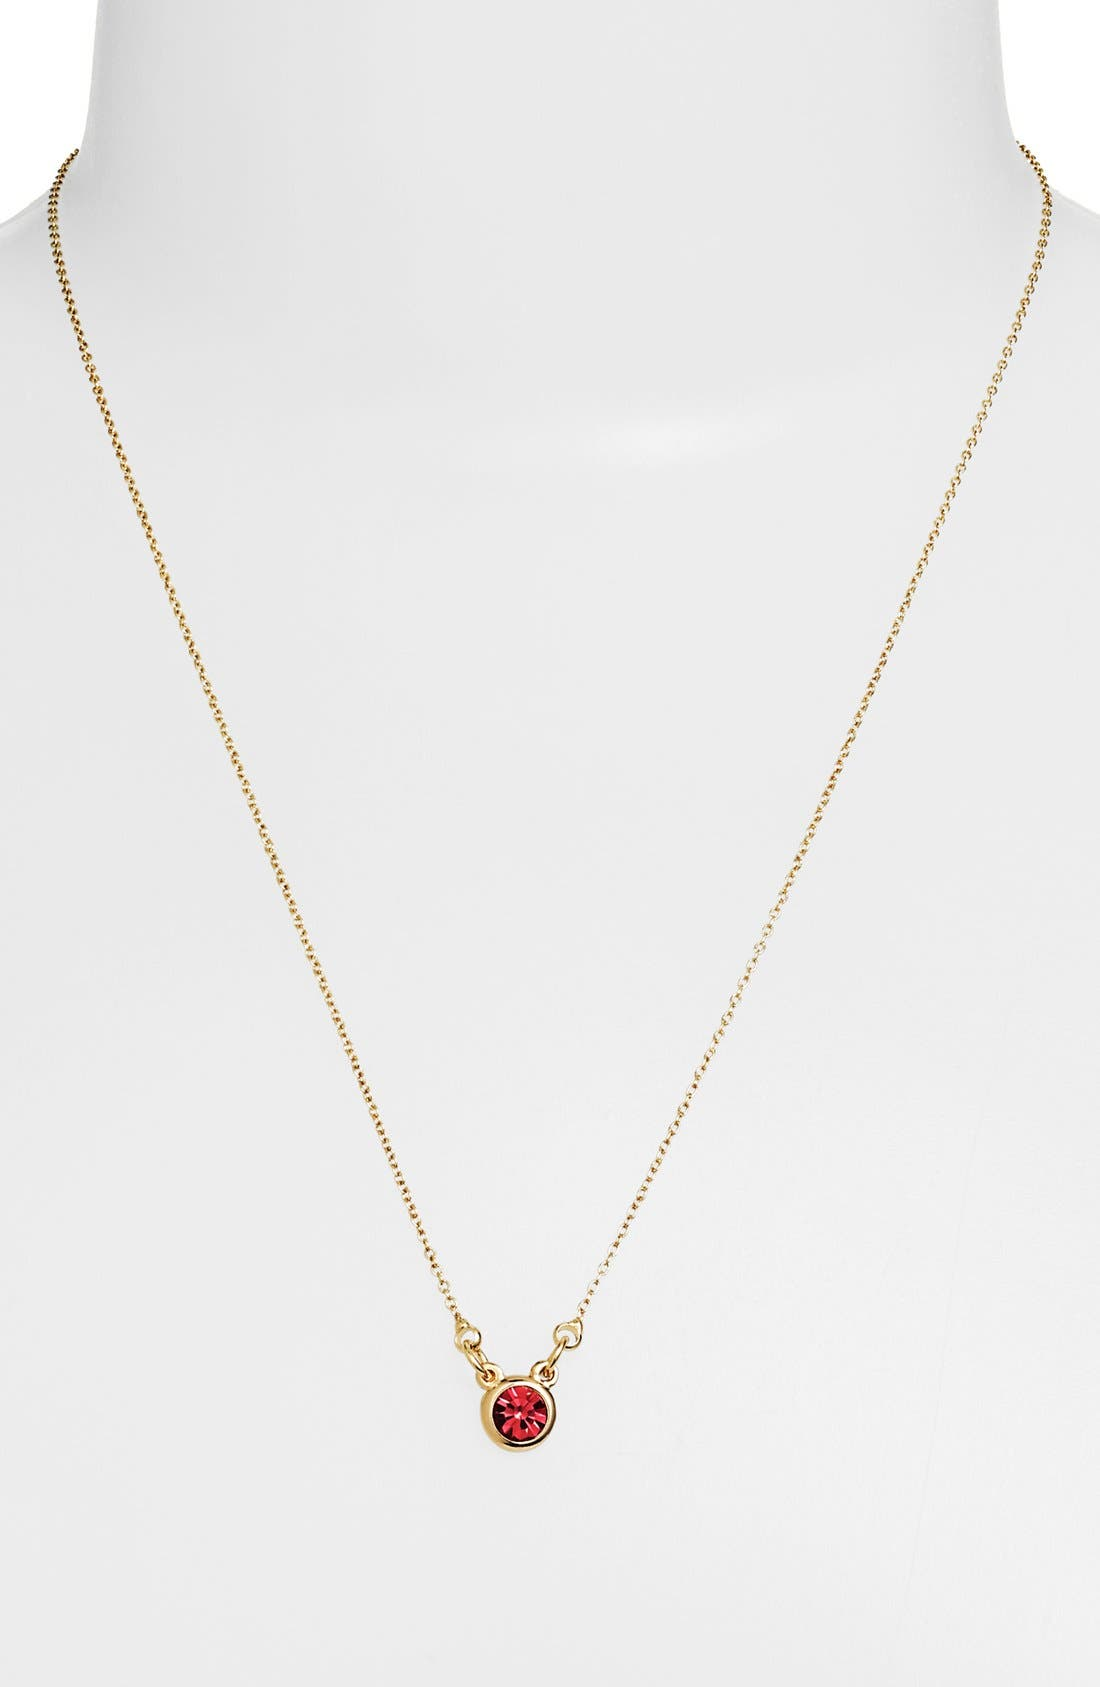 Alternate Image 1 Selected - Stephan & Co. Stone Stud Charm Necklace (Juniors) (Online Only)